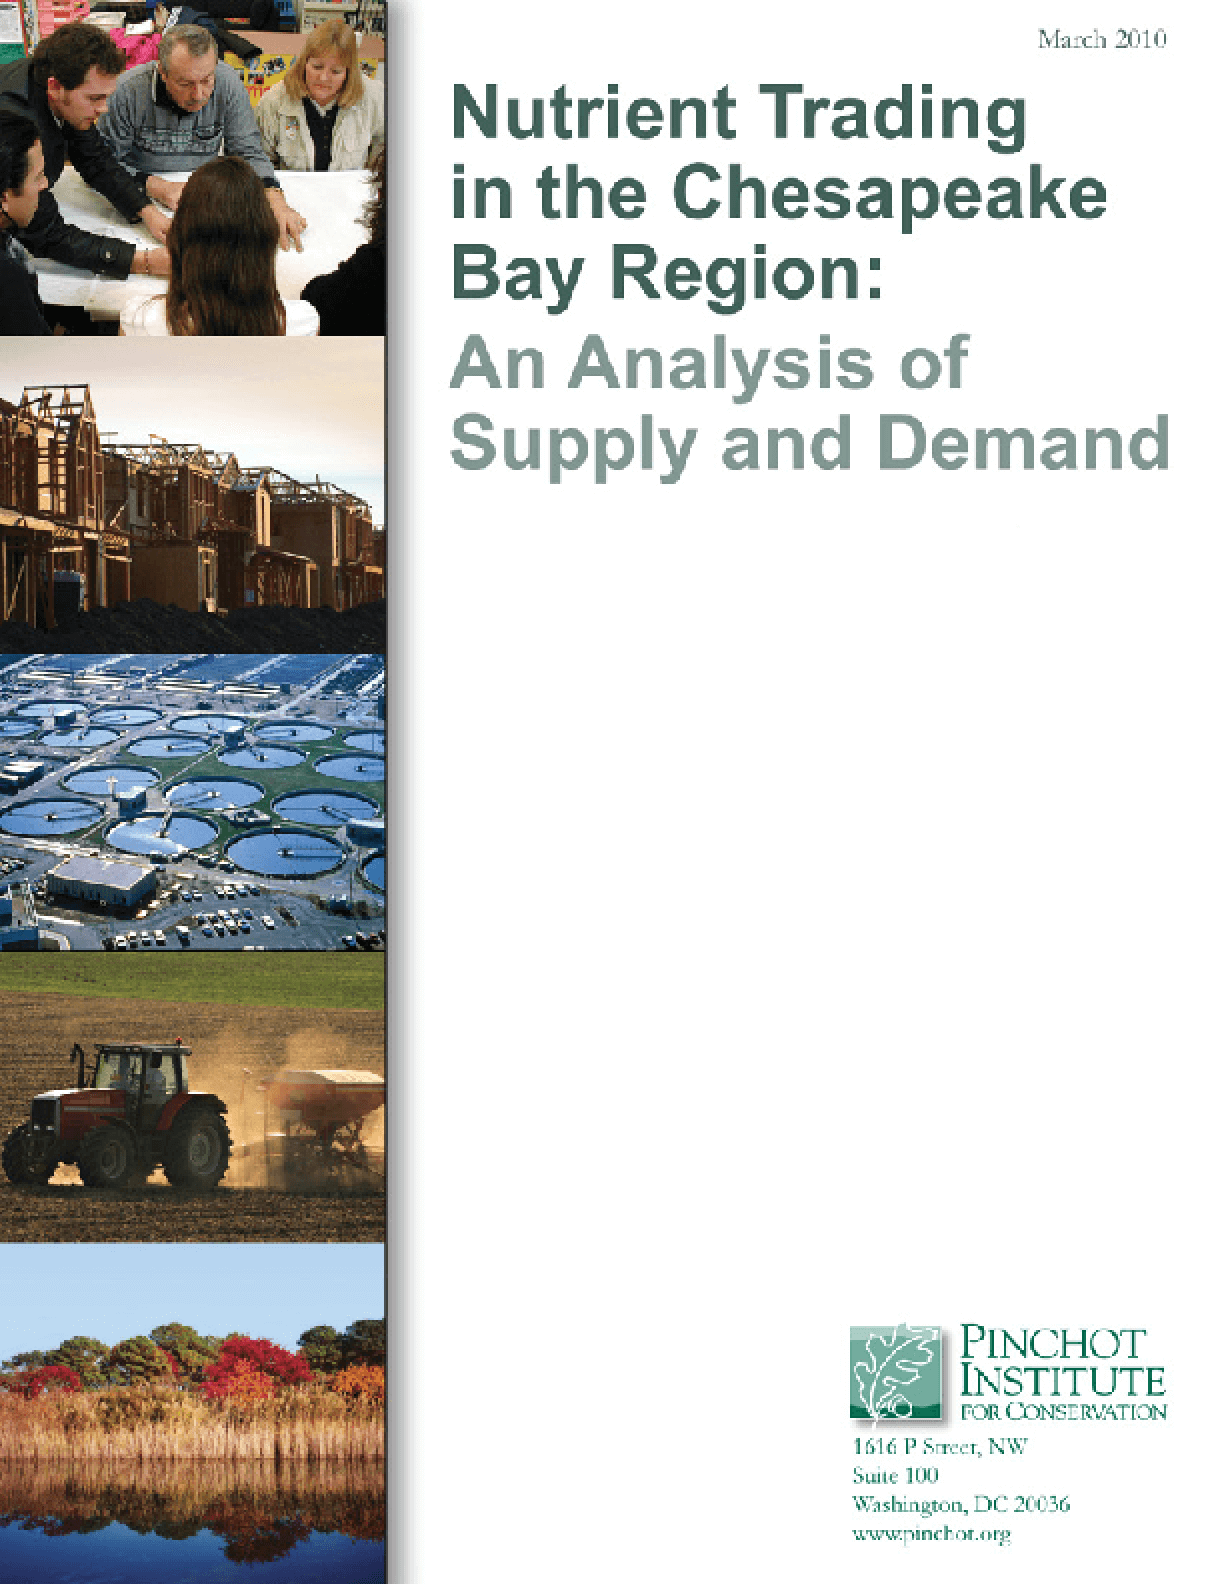 Nutrient Trading in the Chesapeake Bay Region: An Analysis of Supply and Demand